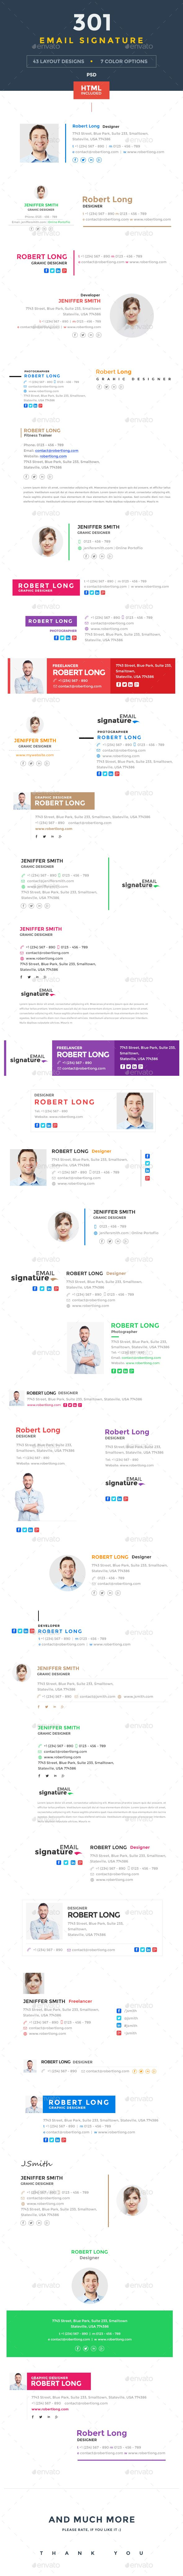 Set of 301 Creative, Modern & Professional Email Signatures for your Business & Personal use. It allow you to customize your email signature with your logo, social profile, you can easily change its text & color from html as well as photoshop.